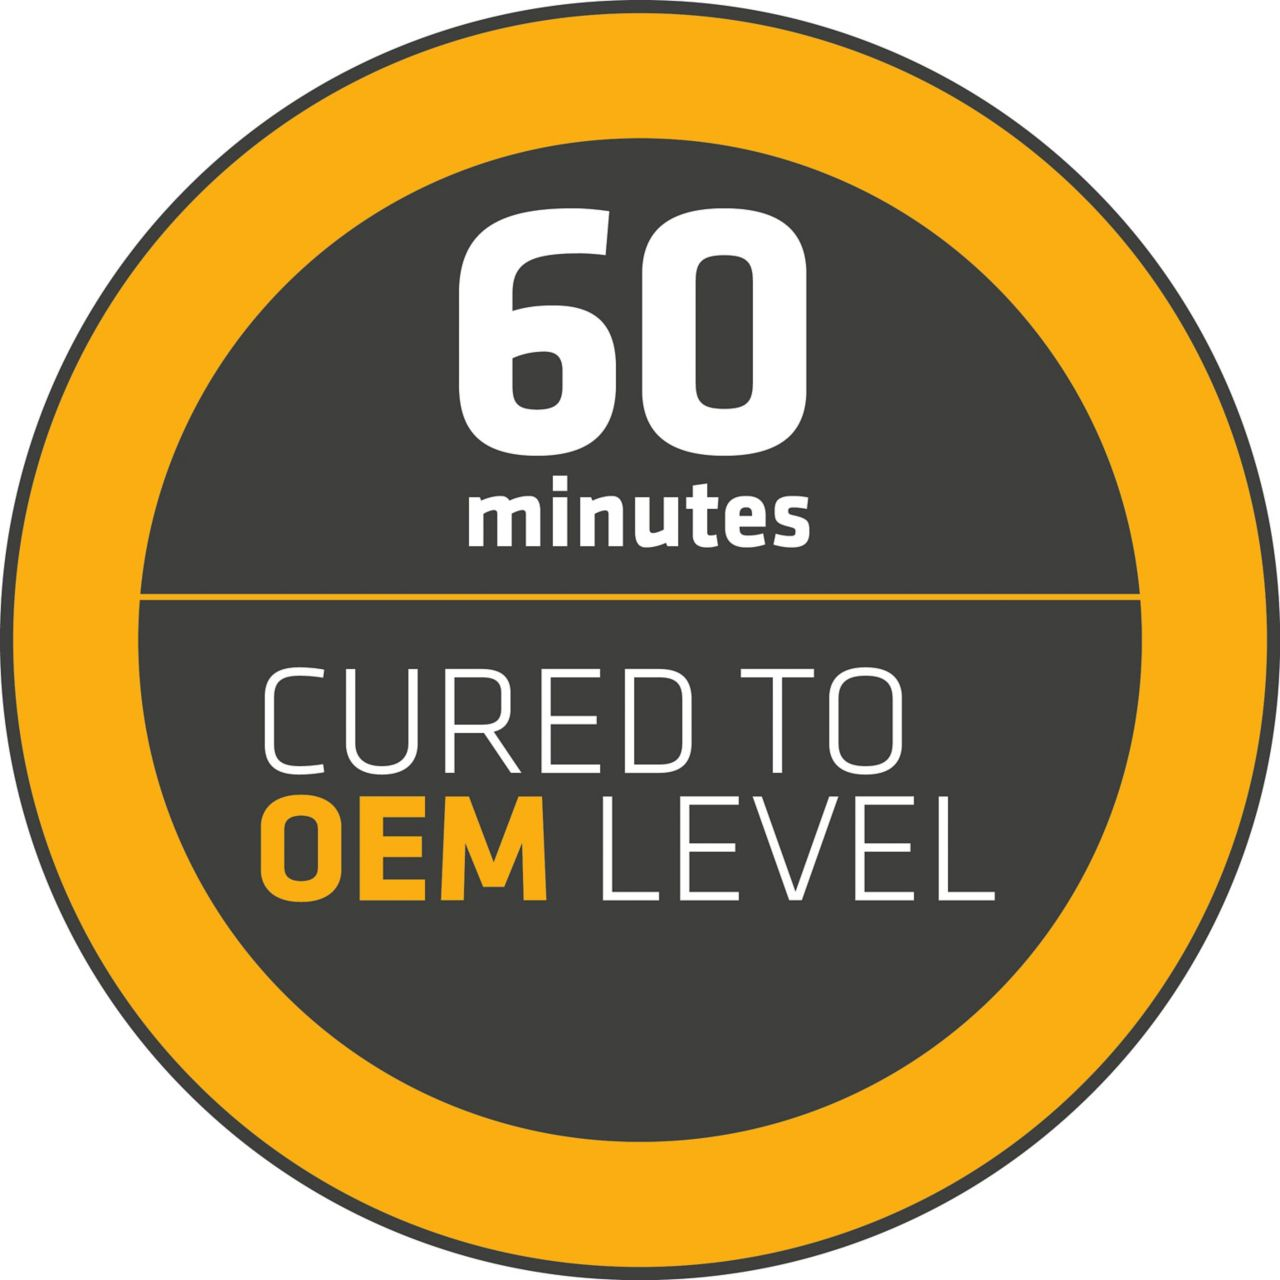 Sixty minute cured to oem level logo